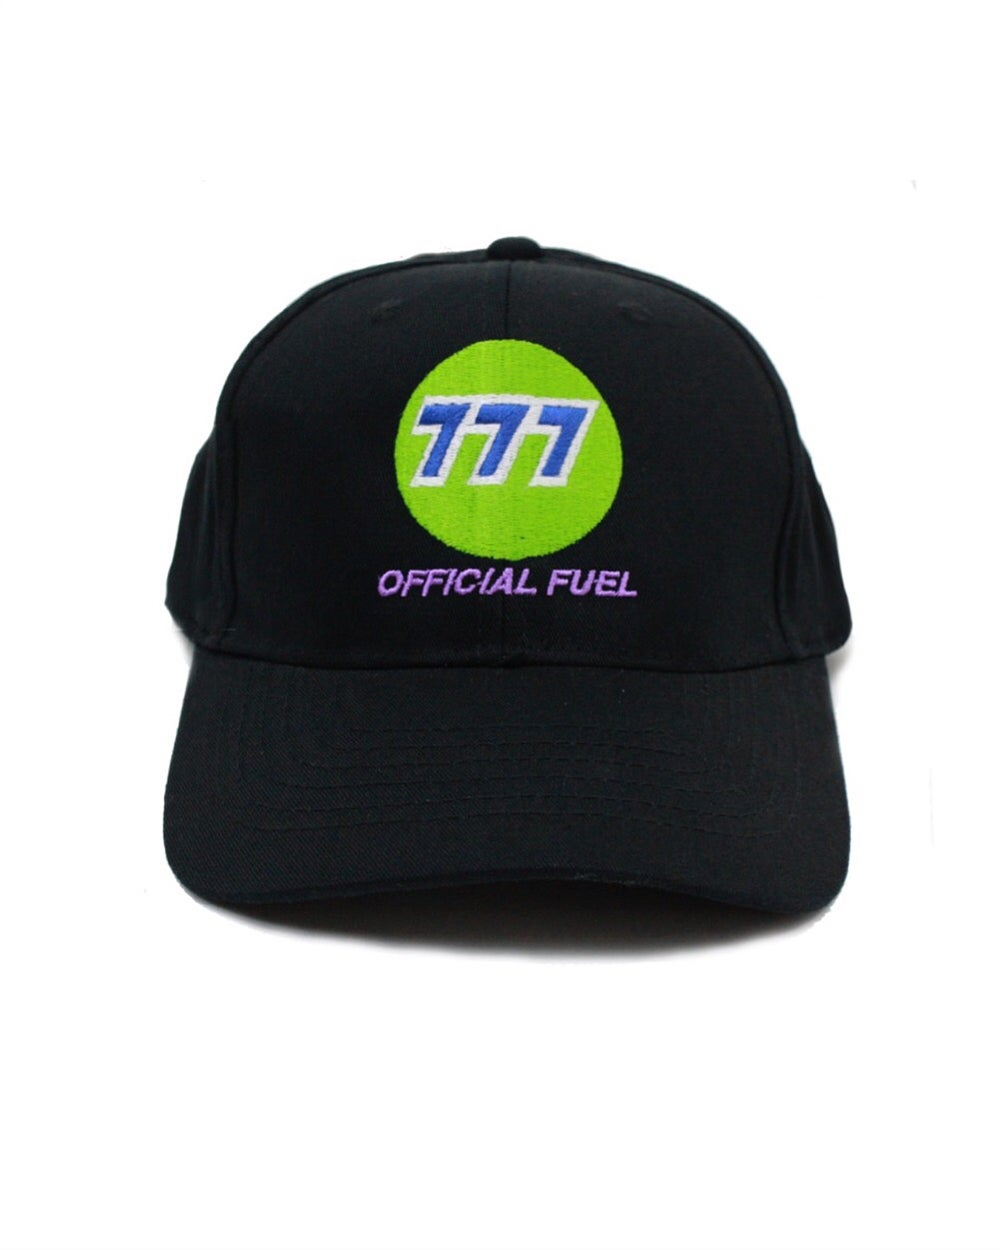 """Image of """"777STATION"""" CAP"""